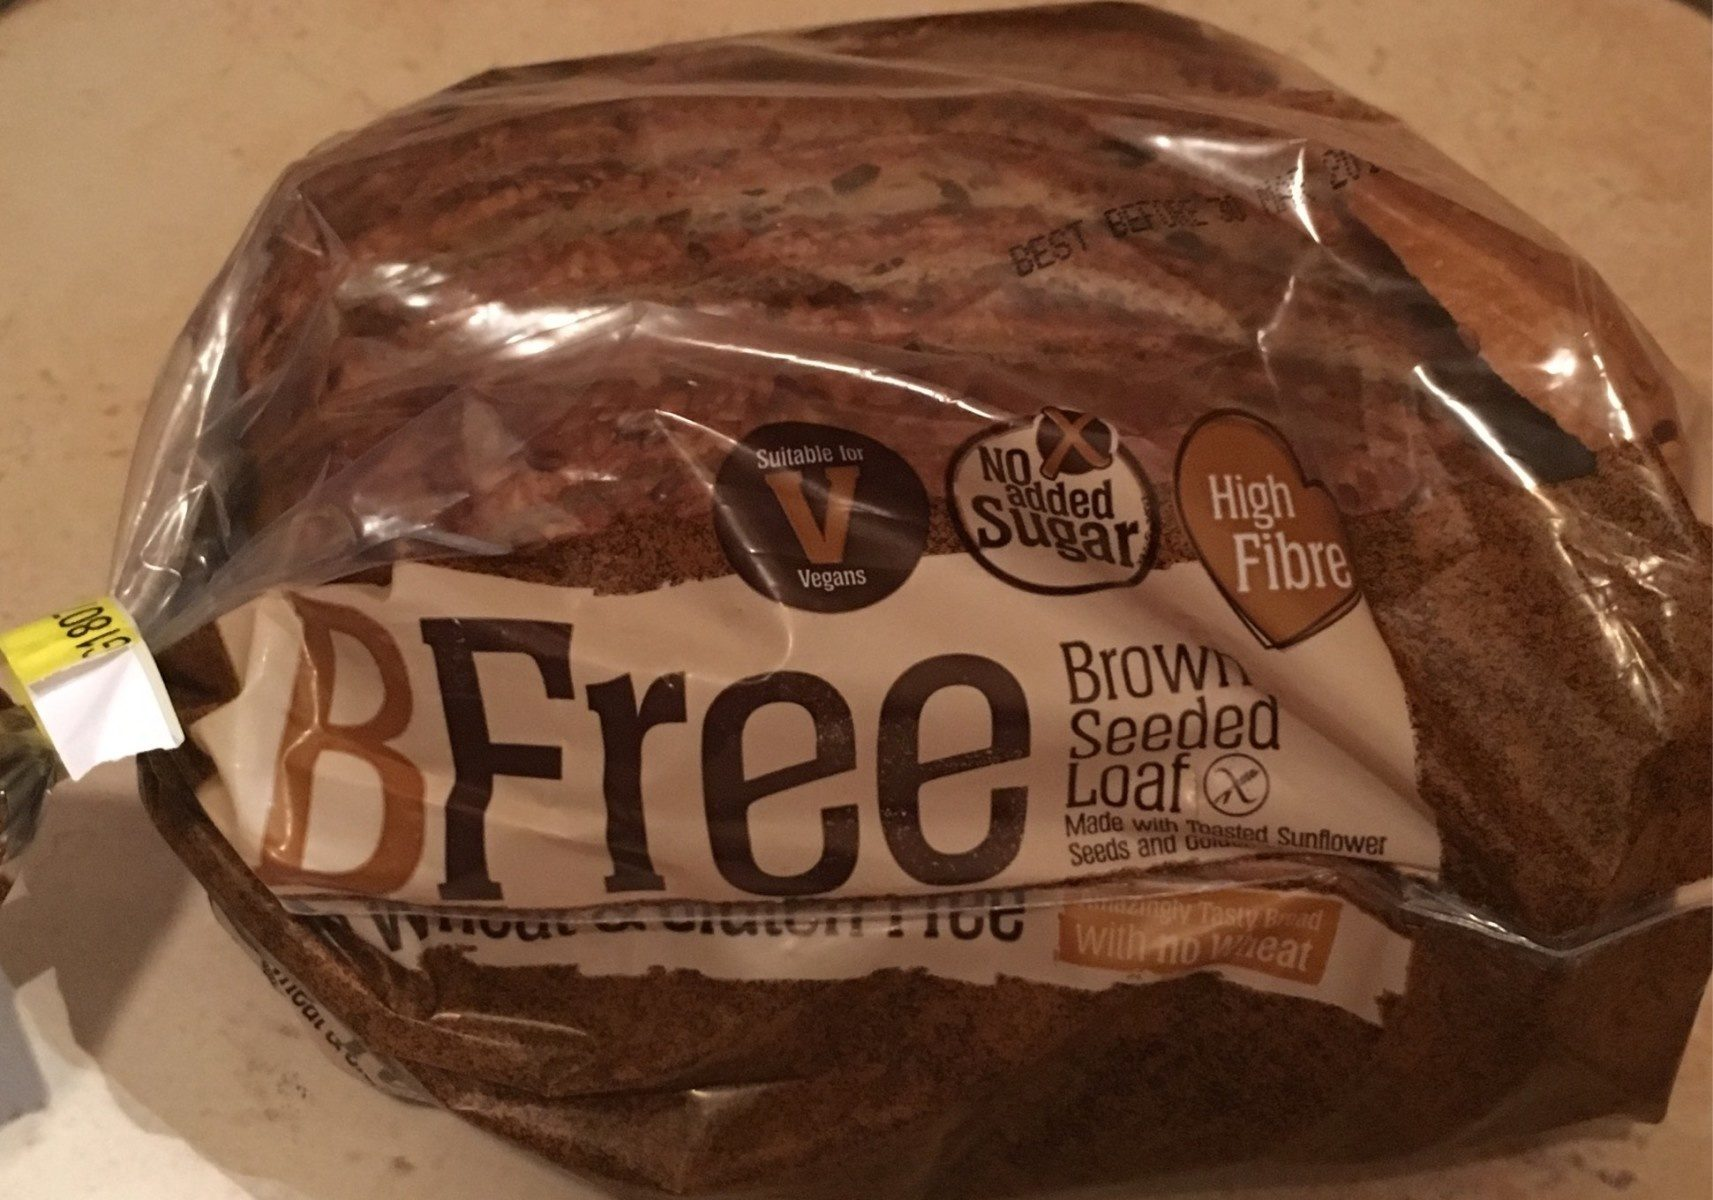 Brown seeded loaf - Product - en